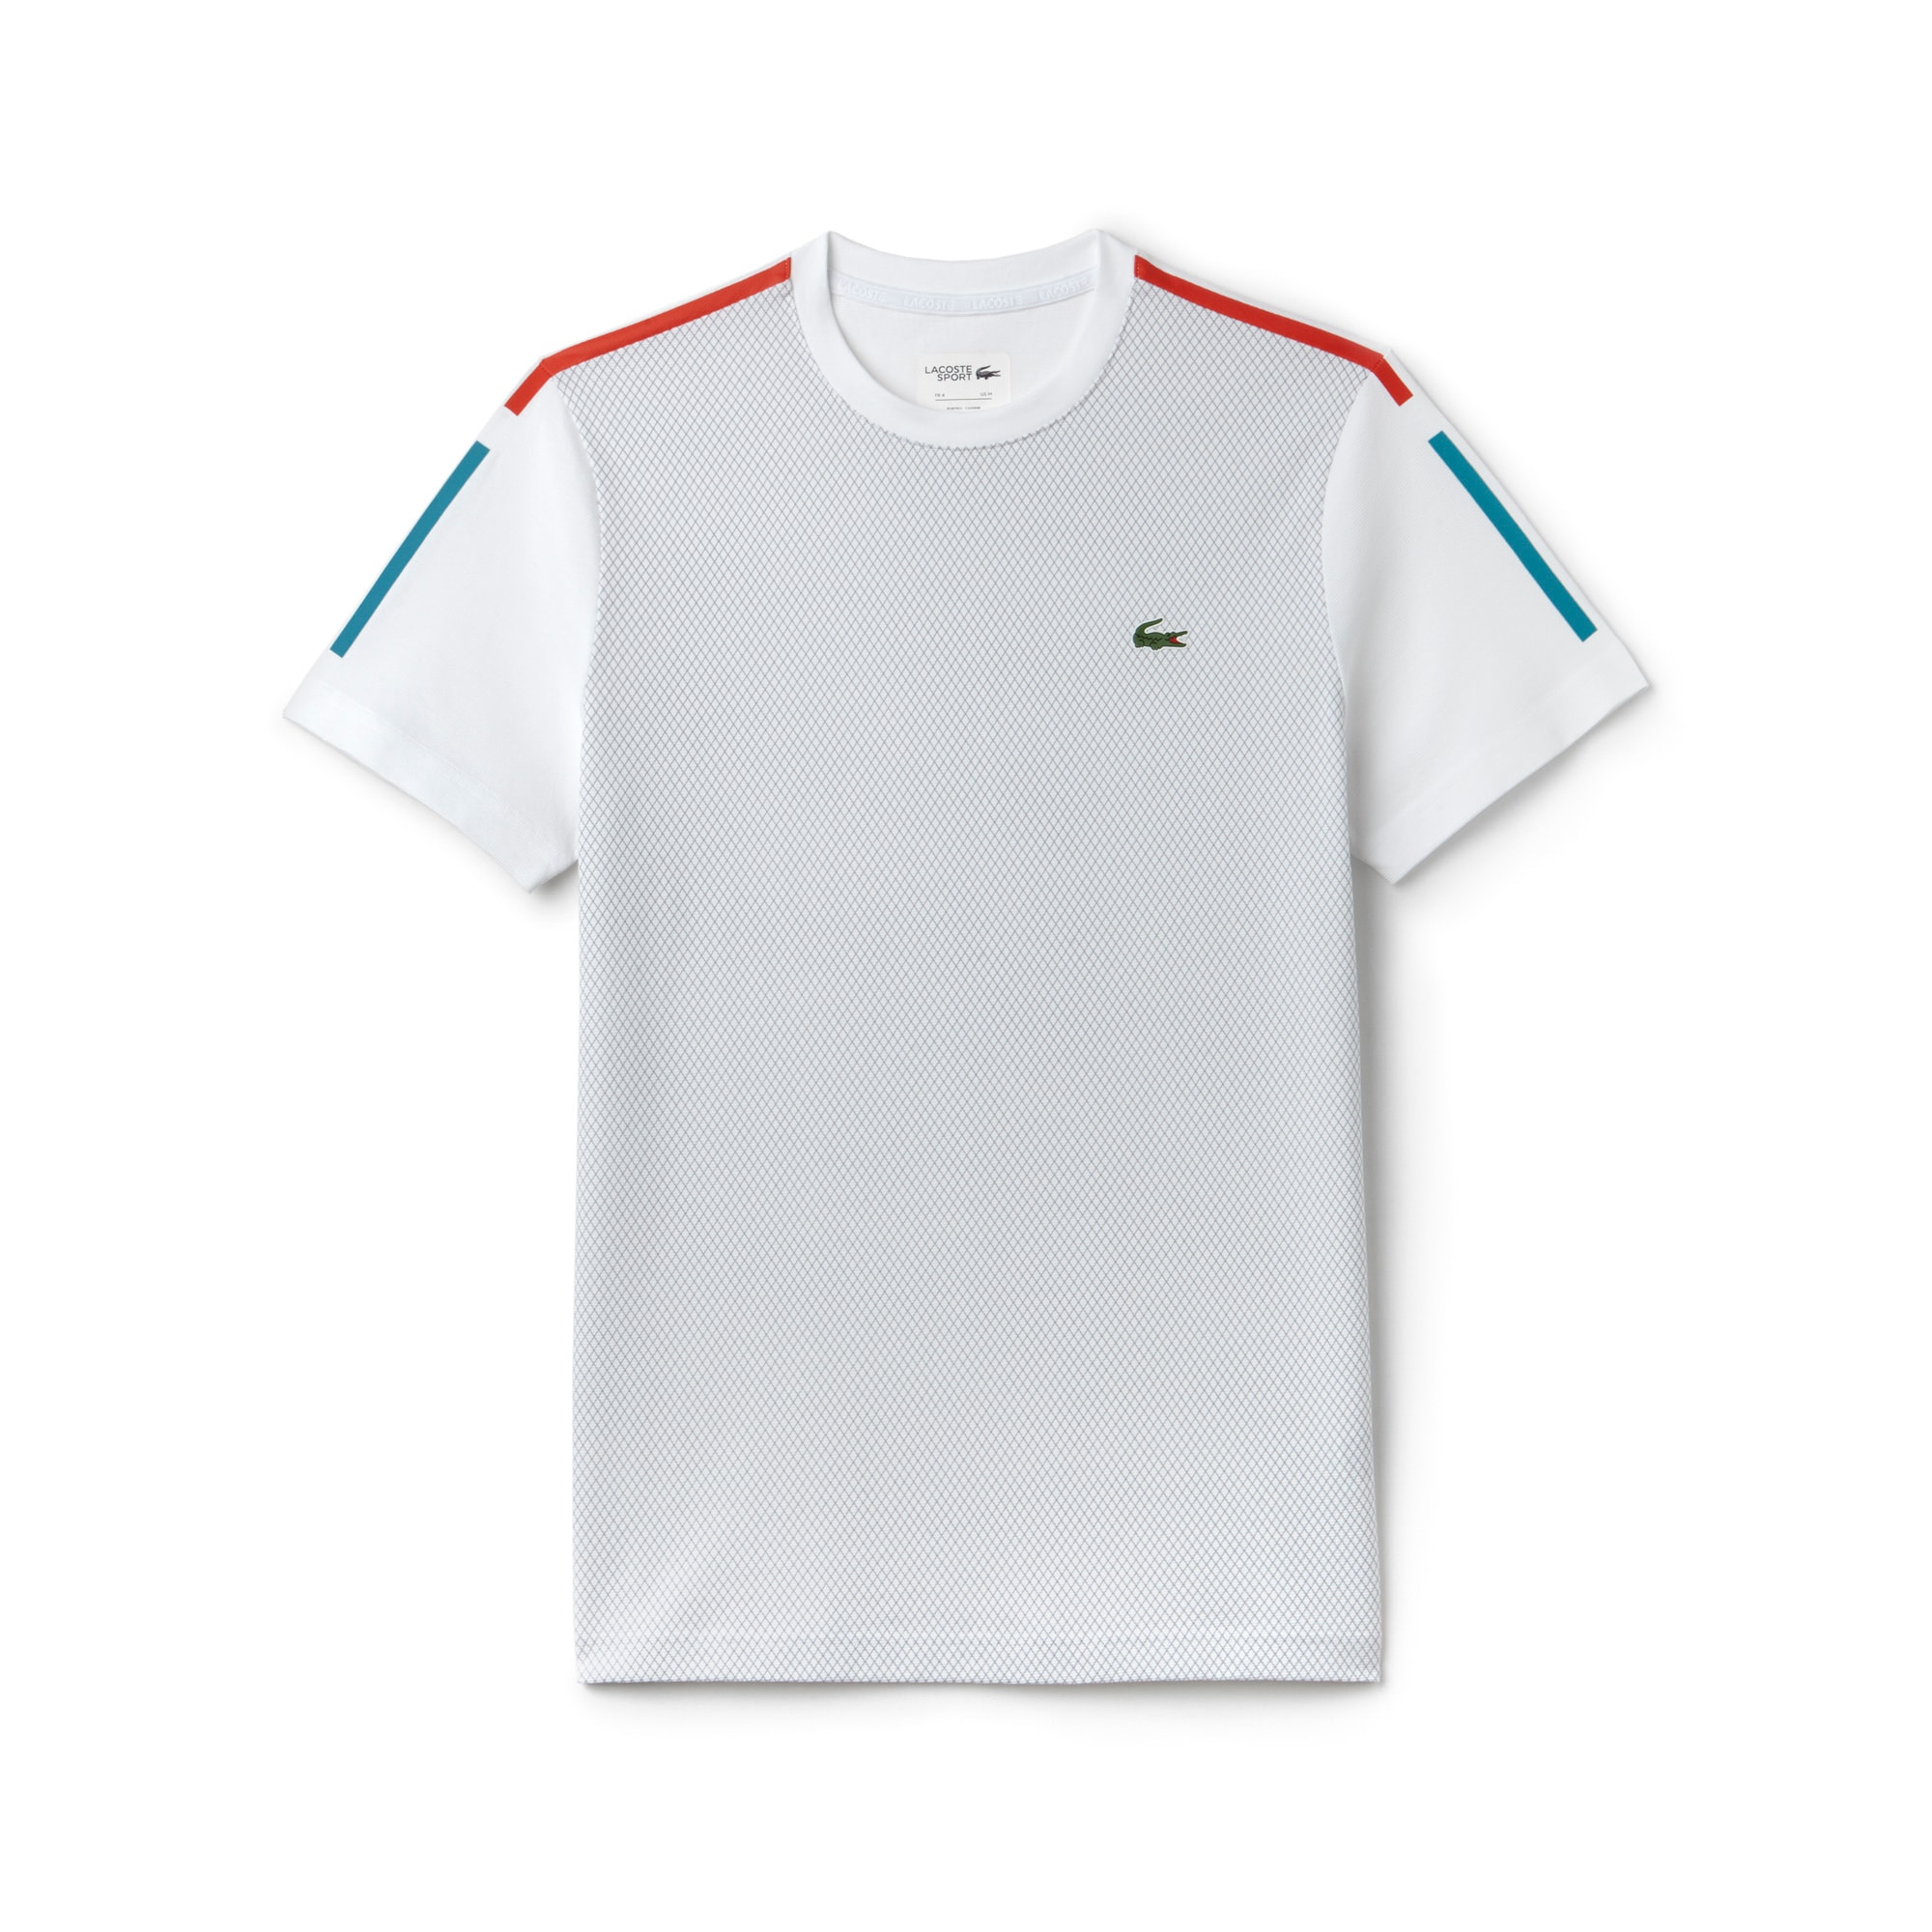 Men's SPORT Light Net Print Knit Crew Neck Tennis T-Shirt